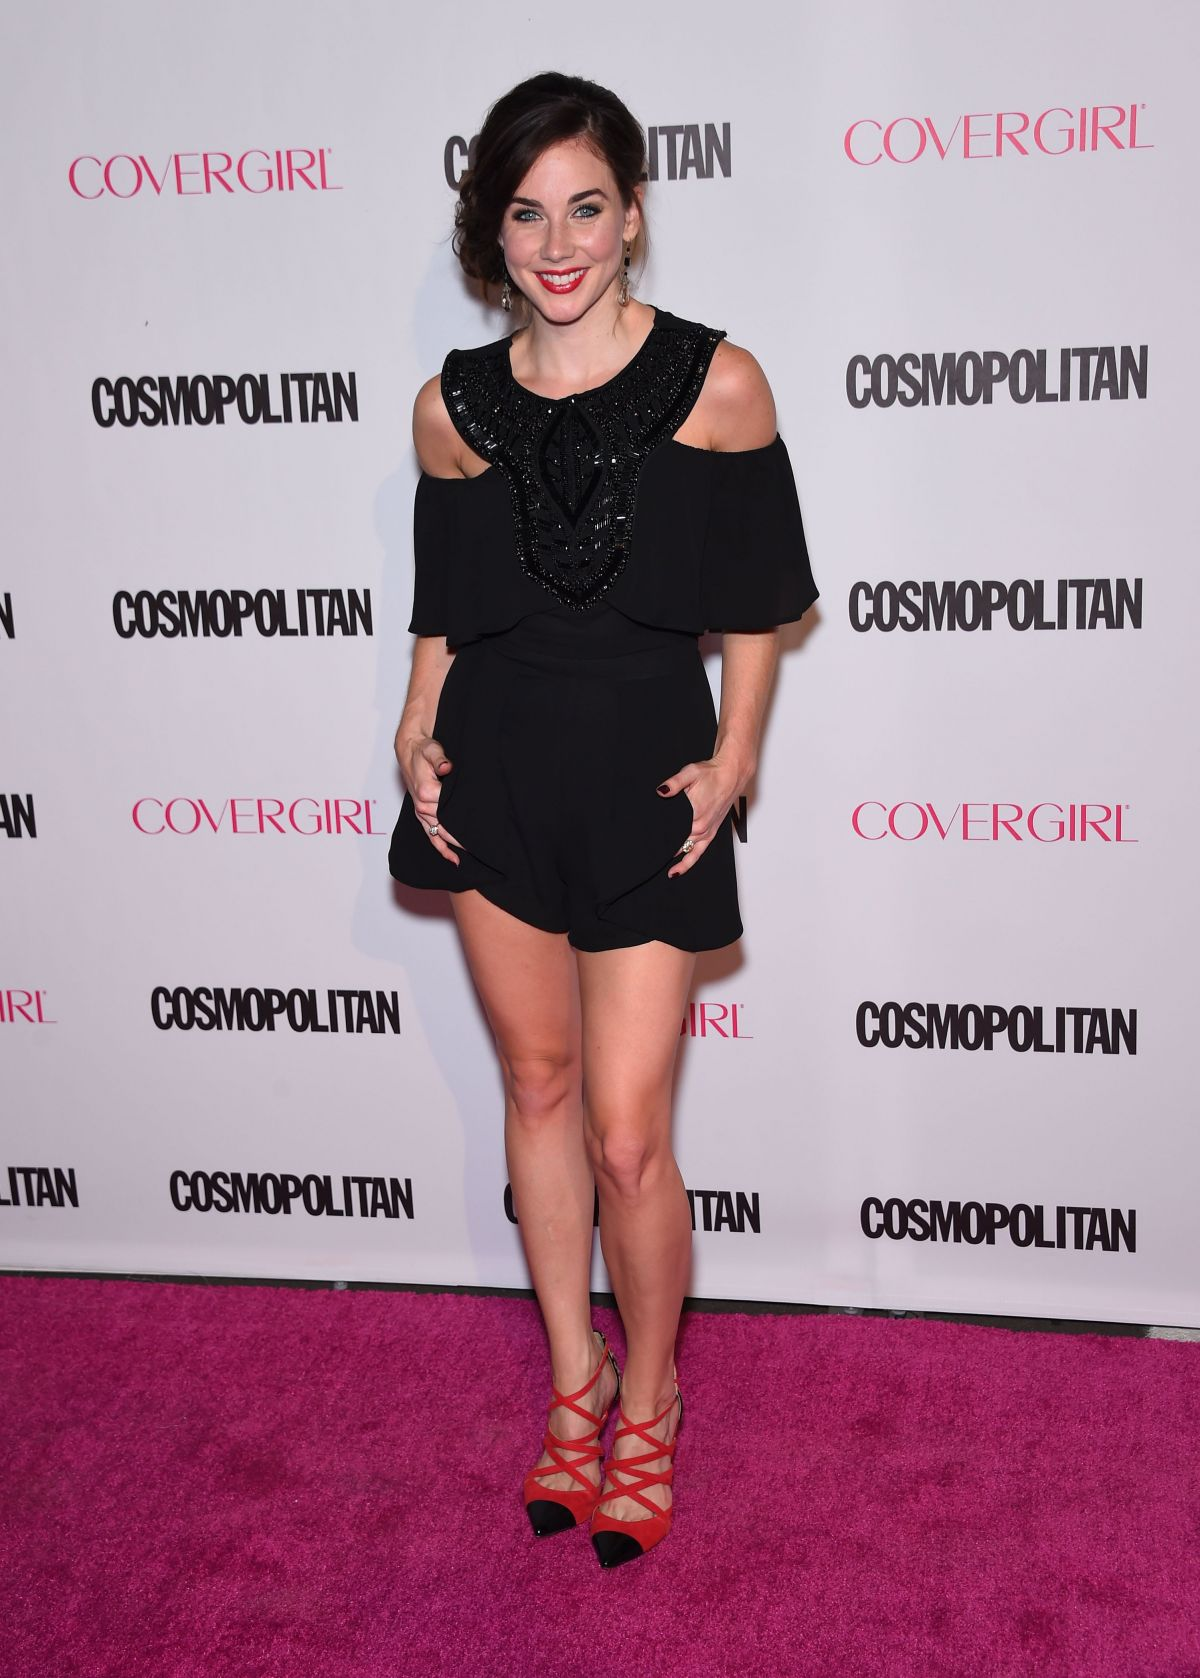 LYNDON SMITH at Cosmopolitan's 50th Birthday Celebration in West Hollywood 10/12/2015